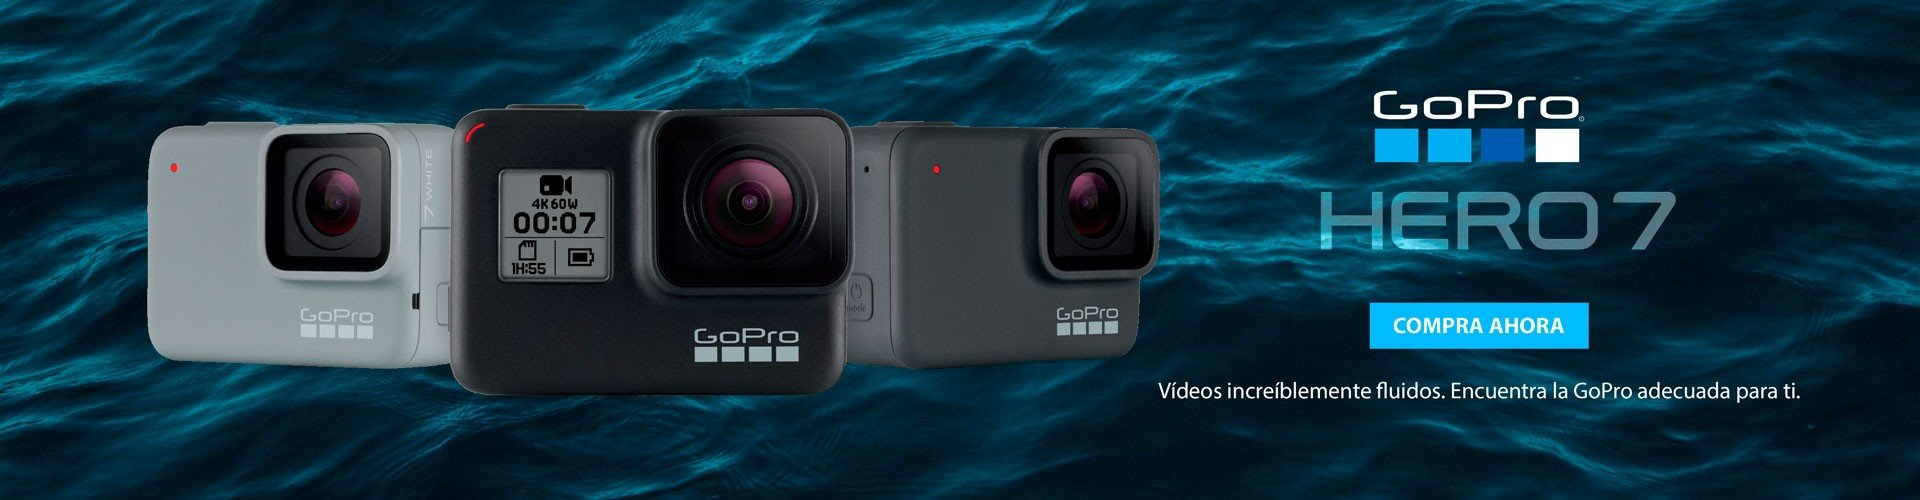 GoPro Hero 7 Series